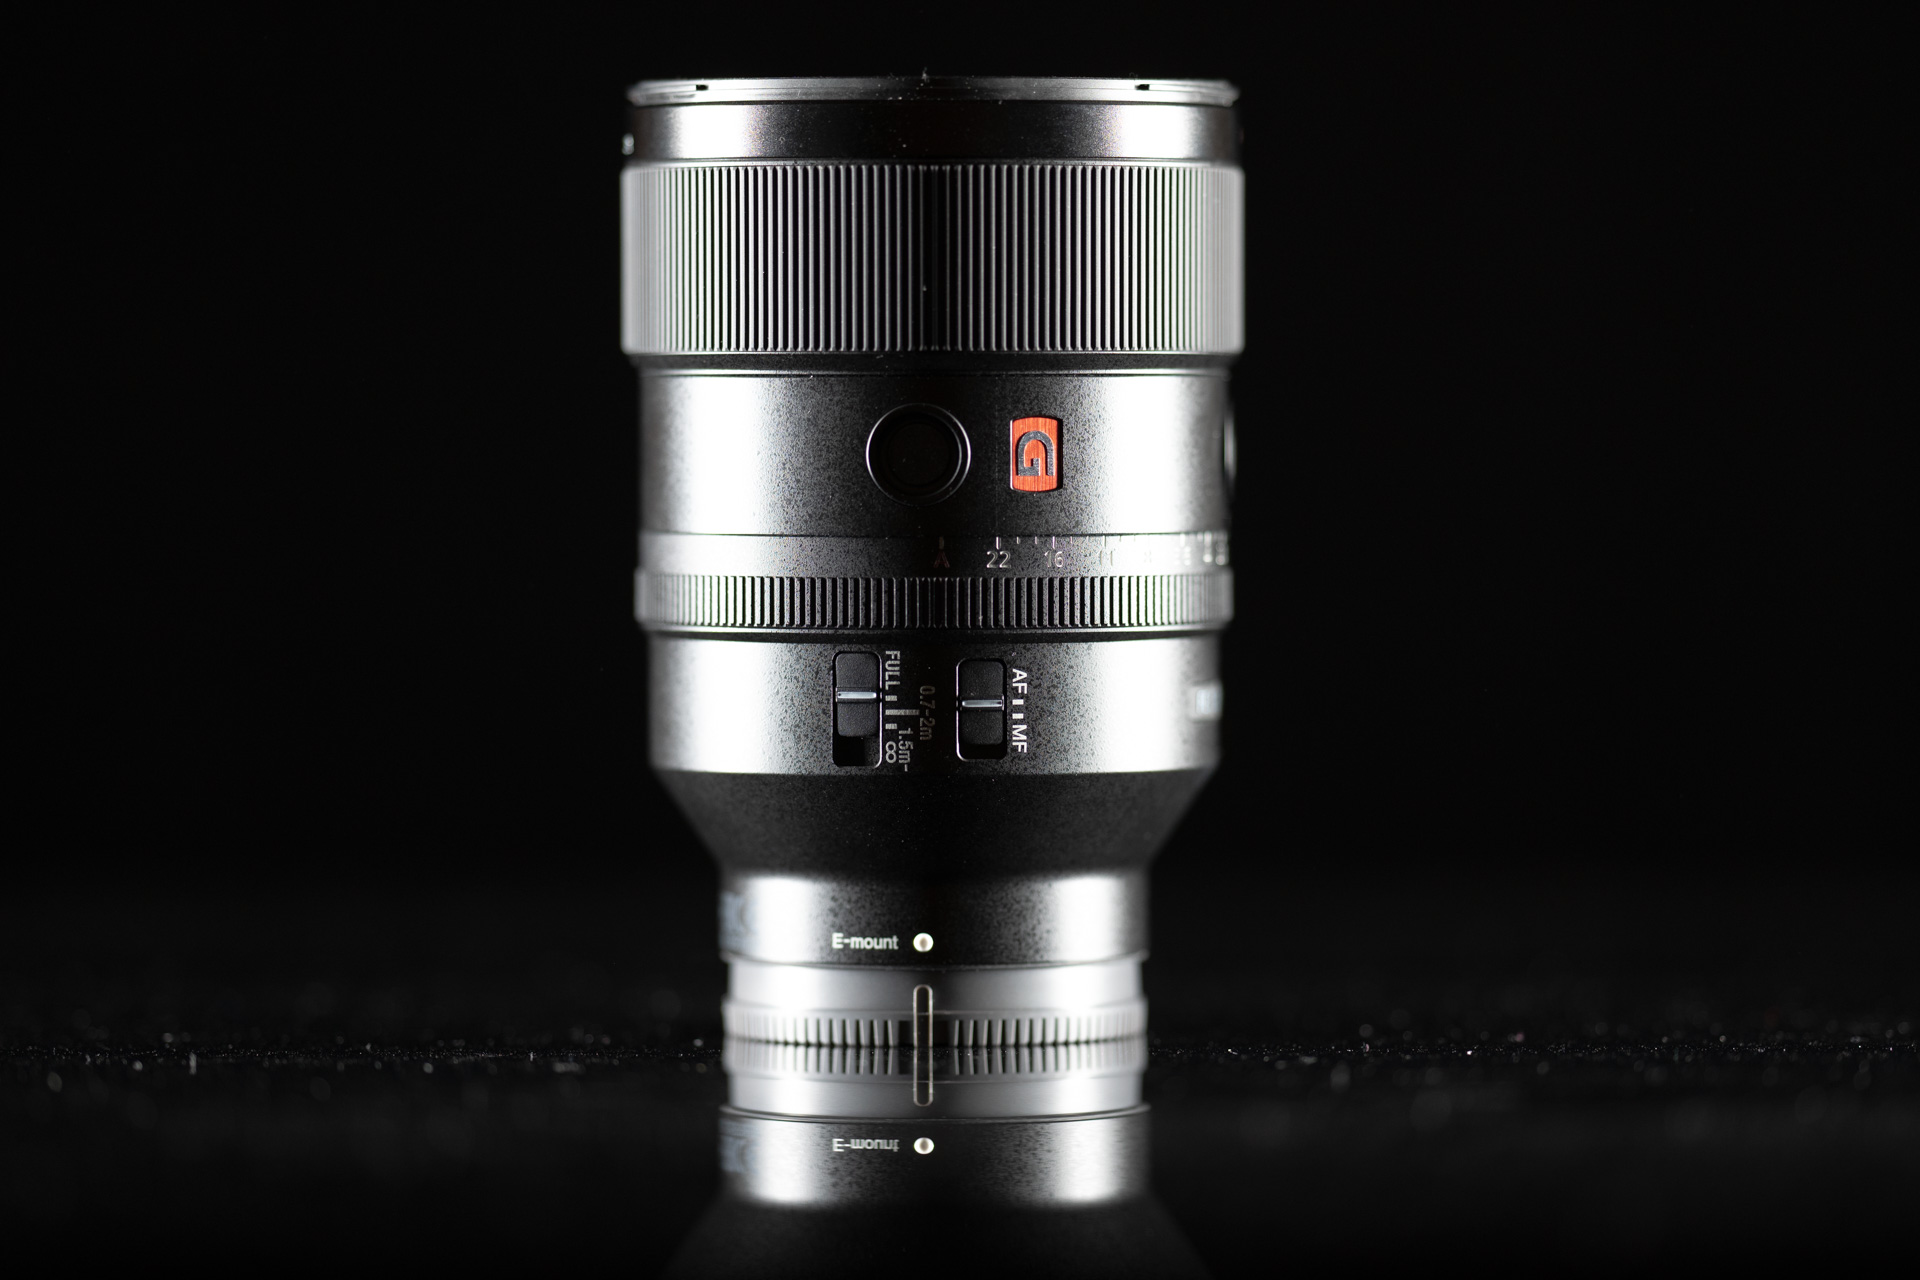 Sony FE 135mm f/1.8 GM lens now official